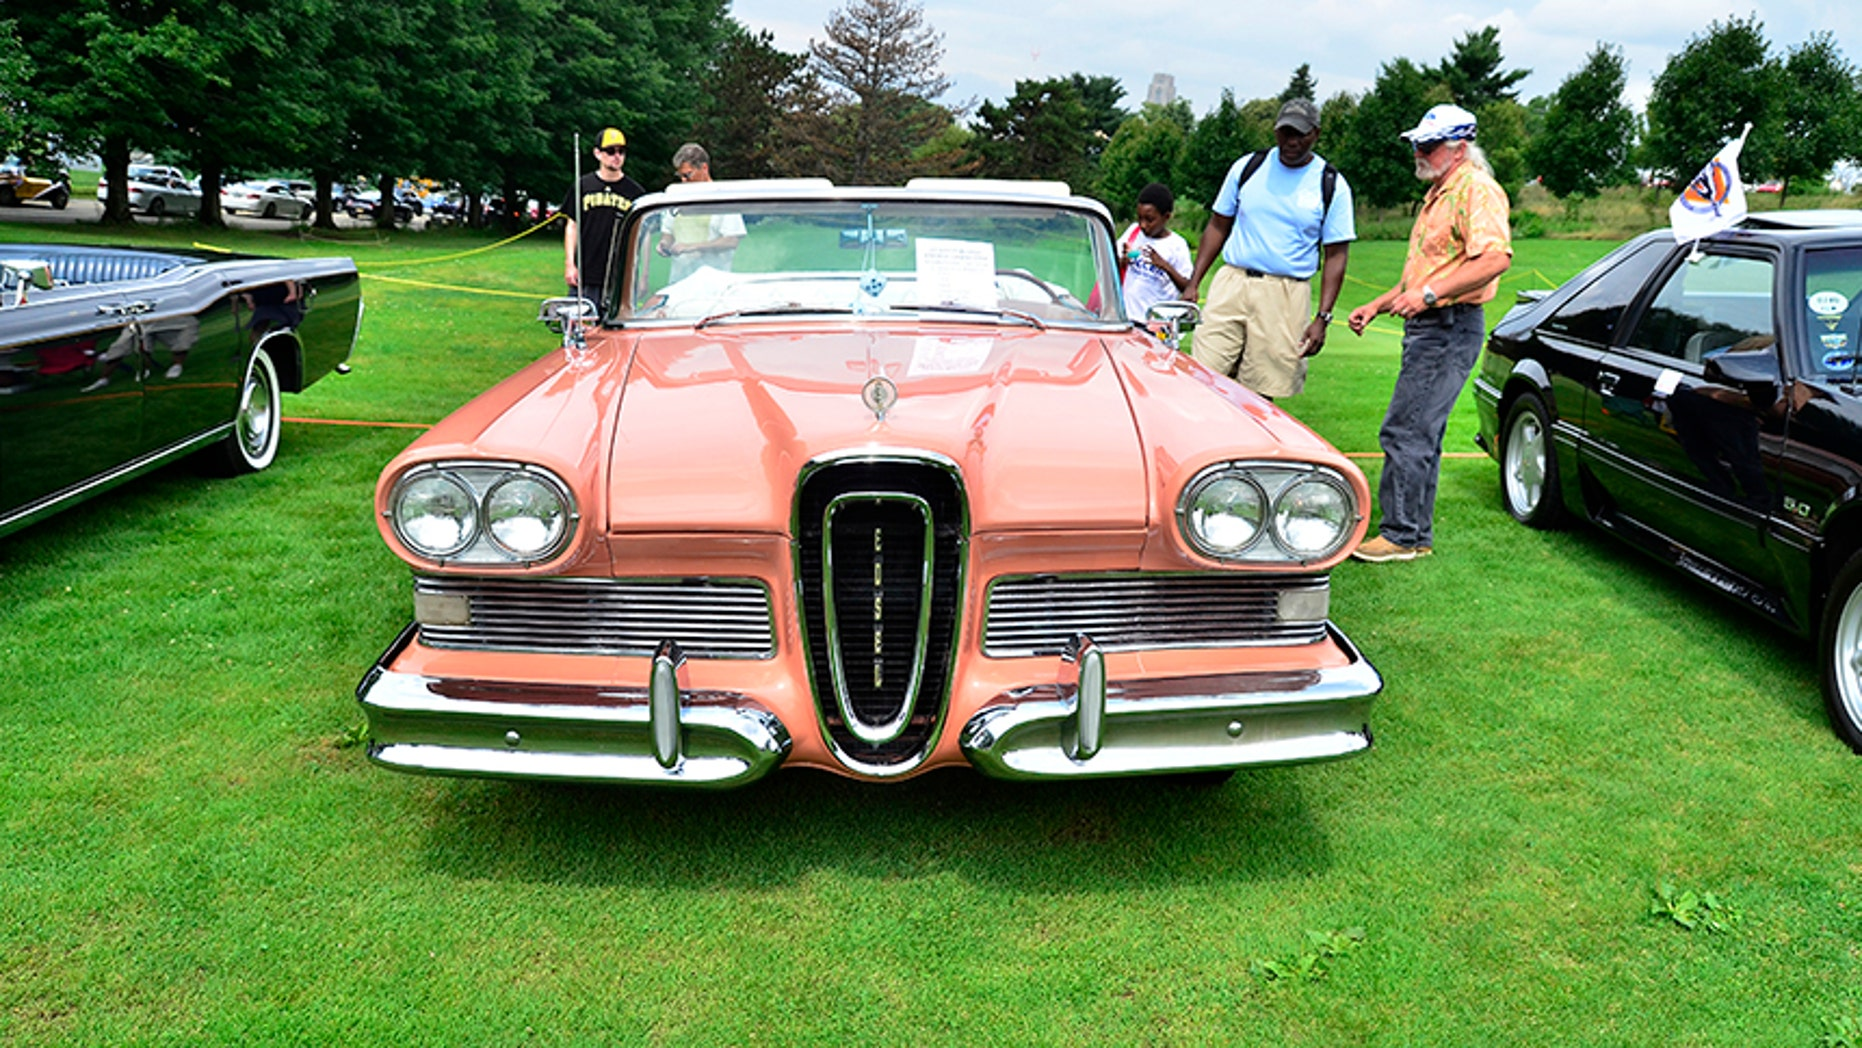 Pittsburgh, USA - July 20, 2014   Pink, classic Edsel on display at the Pittsburgh Vintage Grand Prix in Schenley Park.   The Pittsburgh Vintage Grand Prix is held every July.